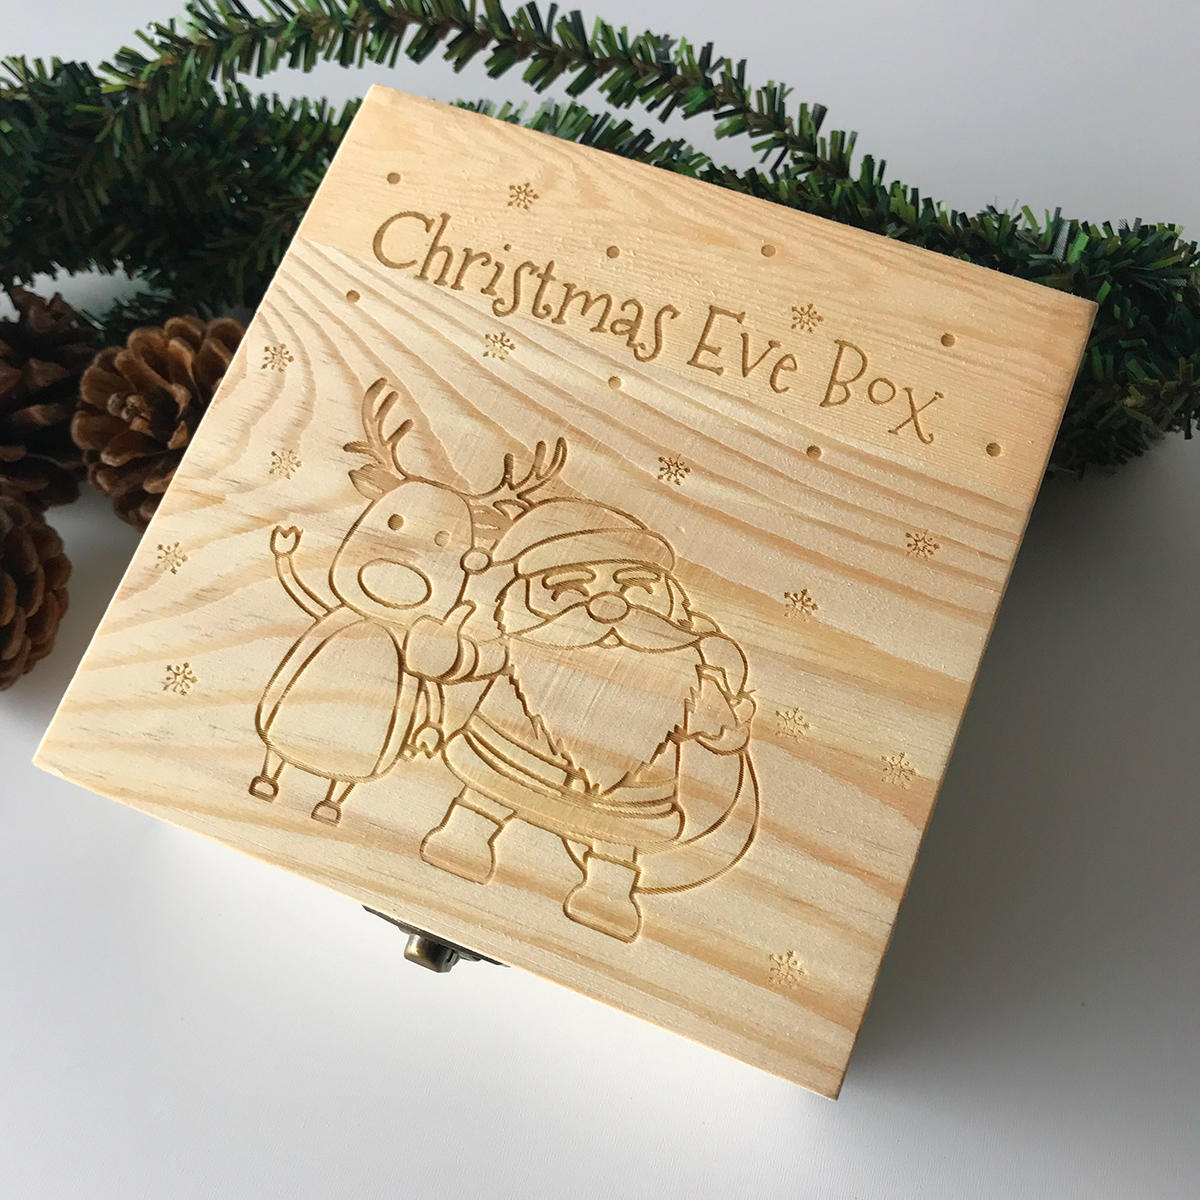 Wood Christmas Decorations.Wooden Christmas Eve Gift Box Engraved Wood Box Chocolate Packaging Party Home Decorations